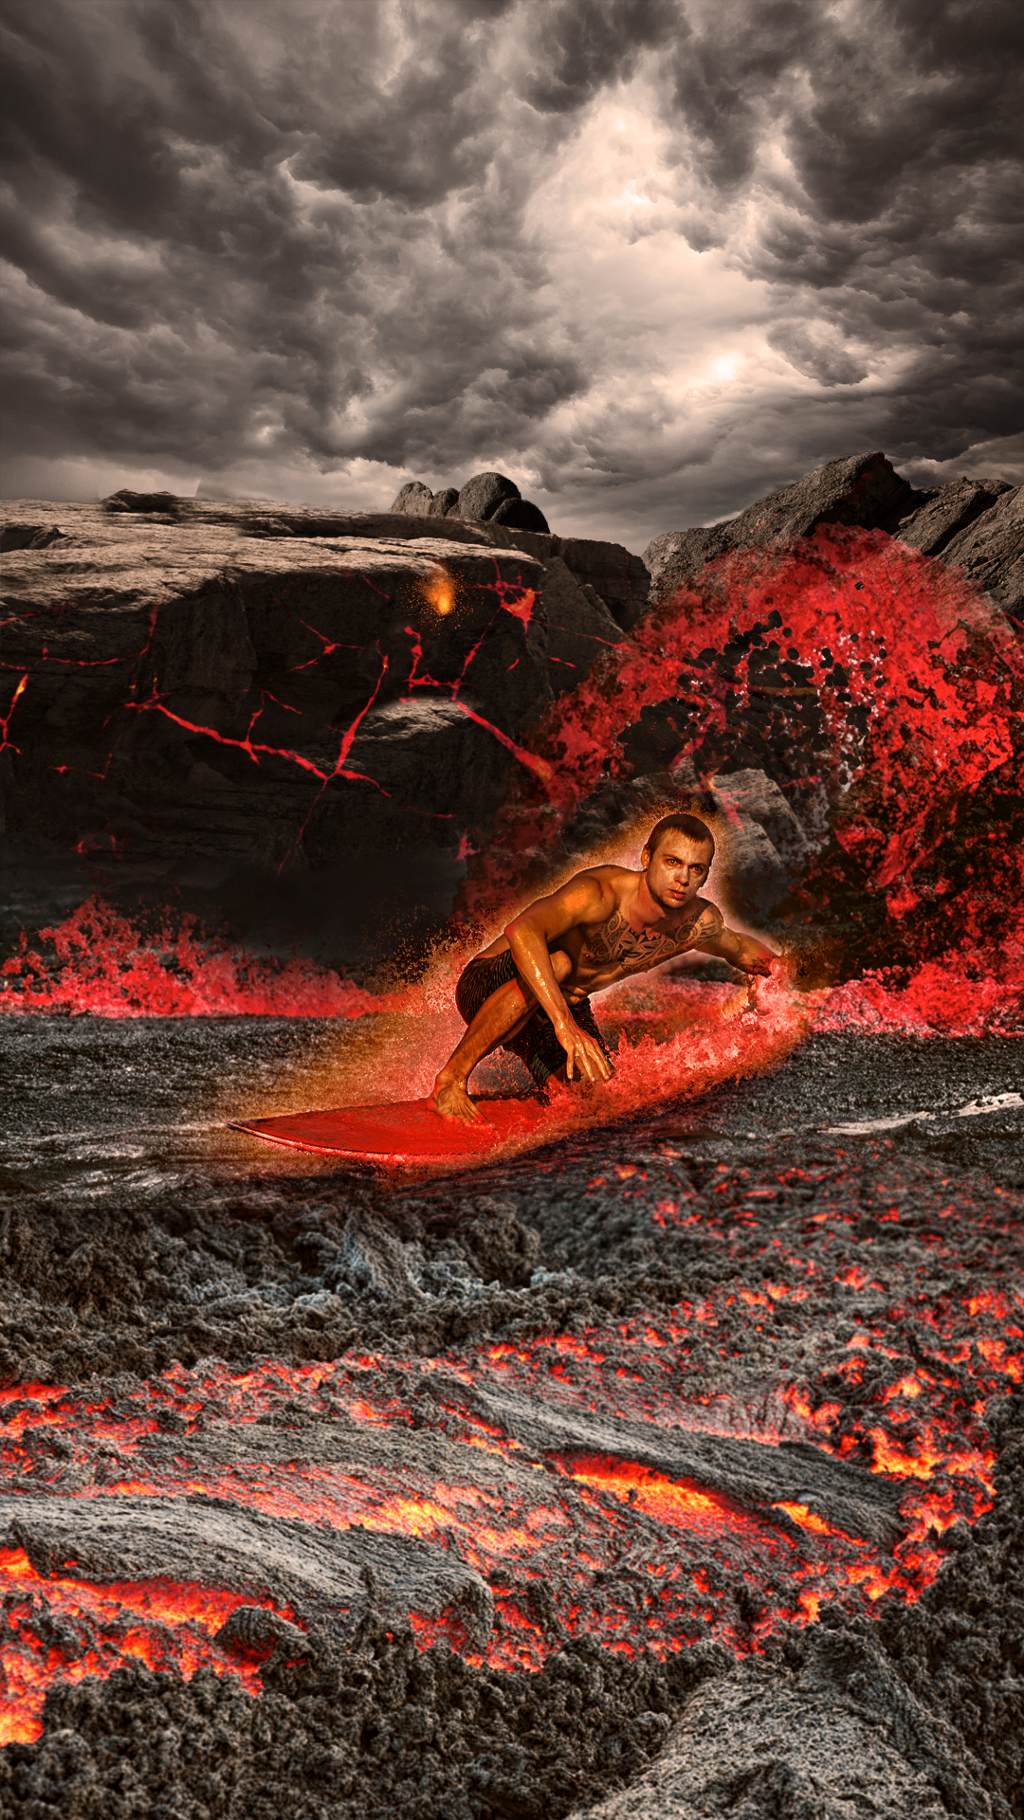 Surfing In Lava Surfer Lava Clouds Ashes Volc